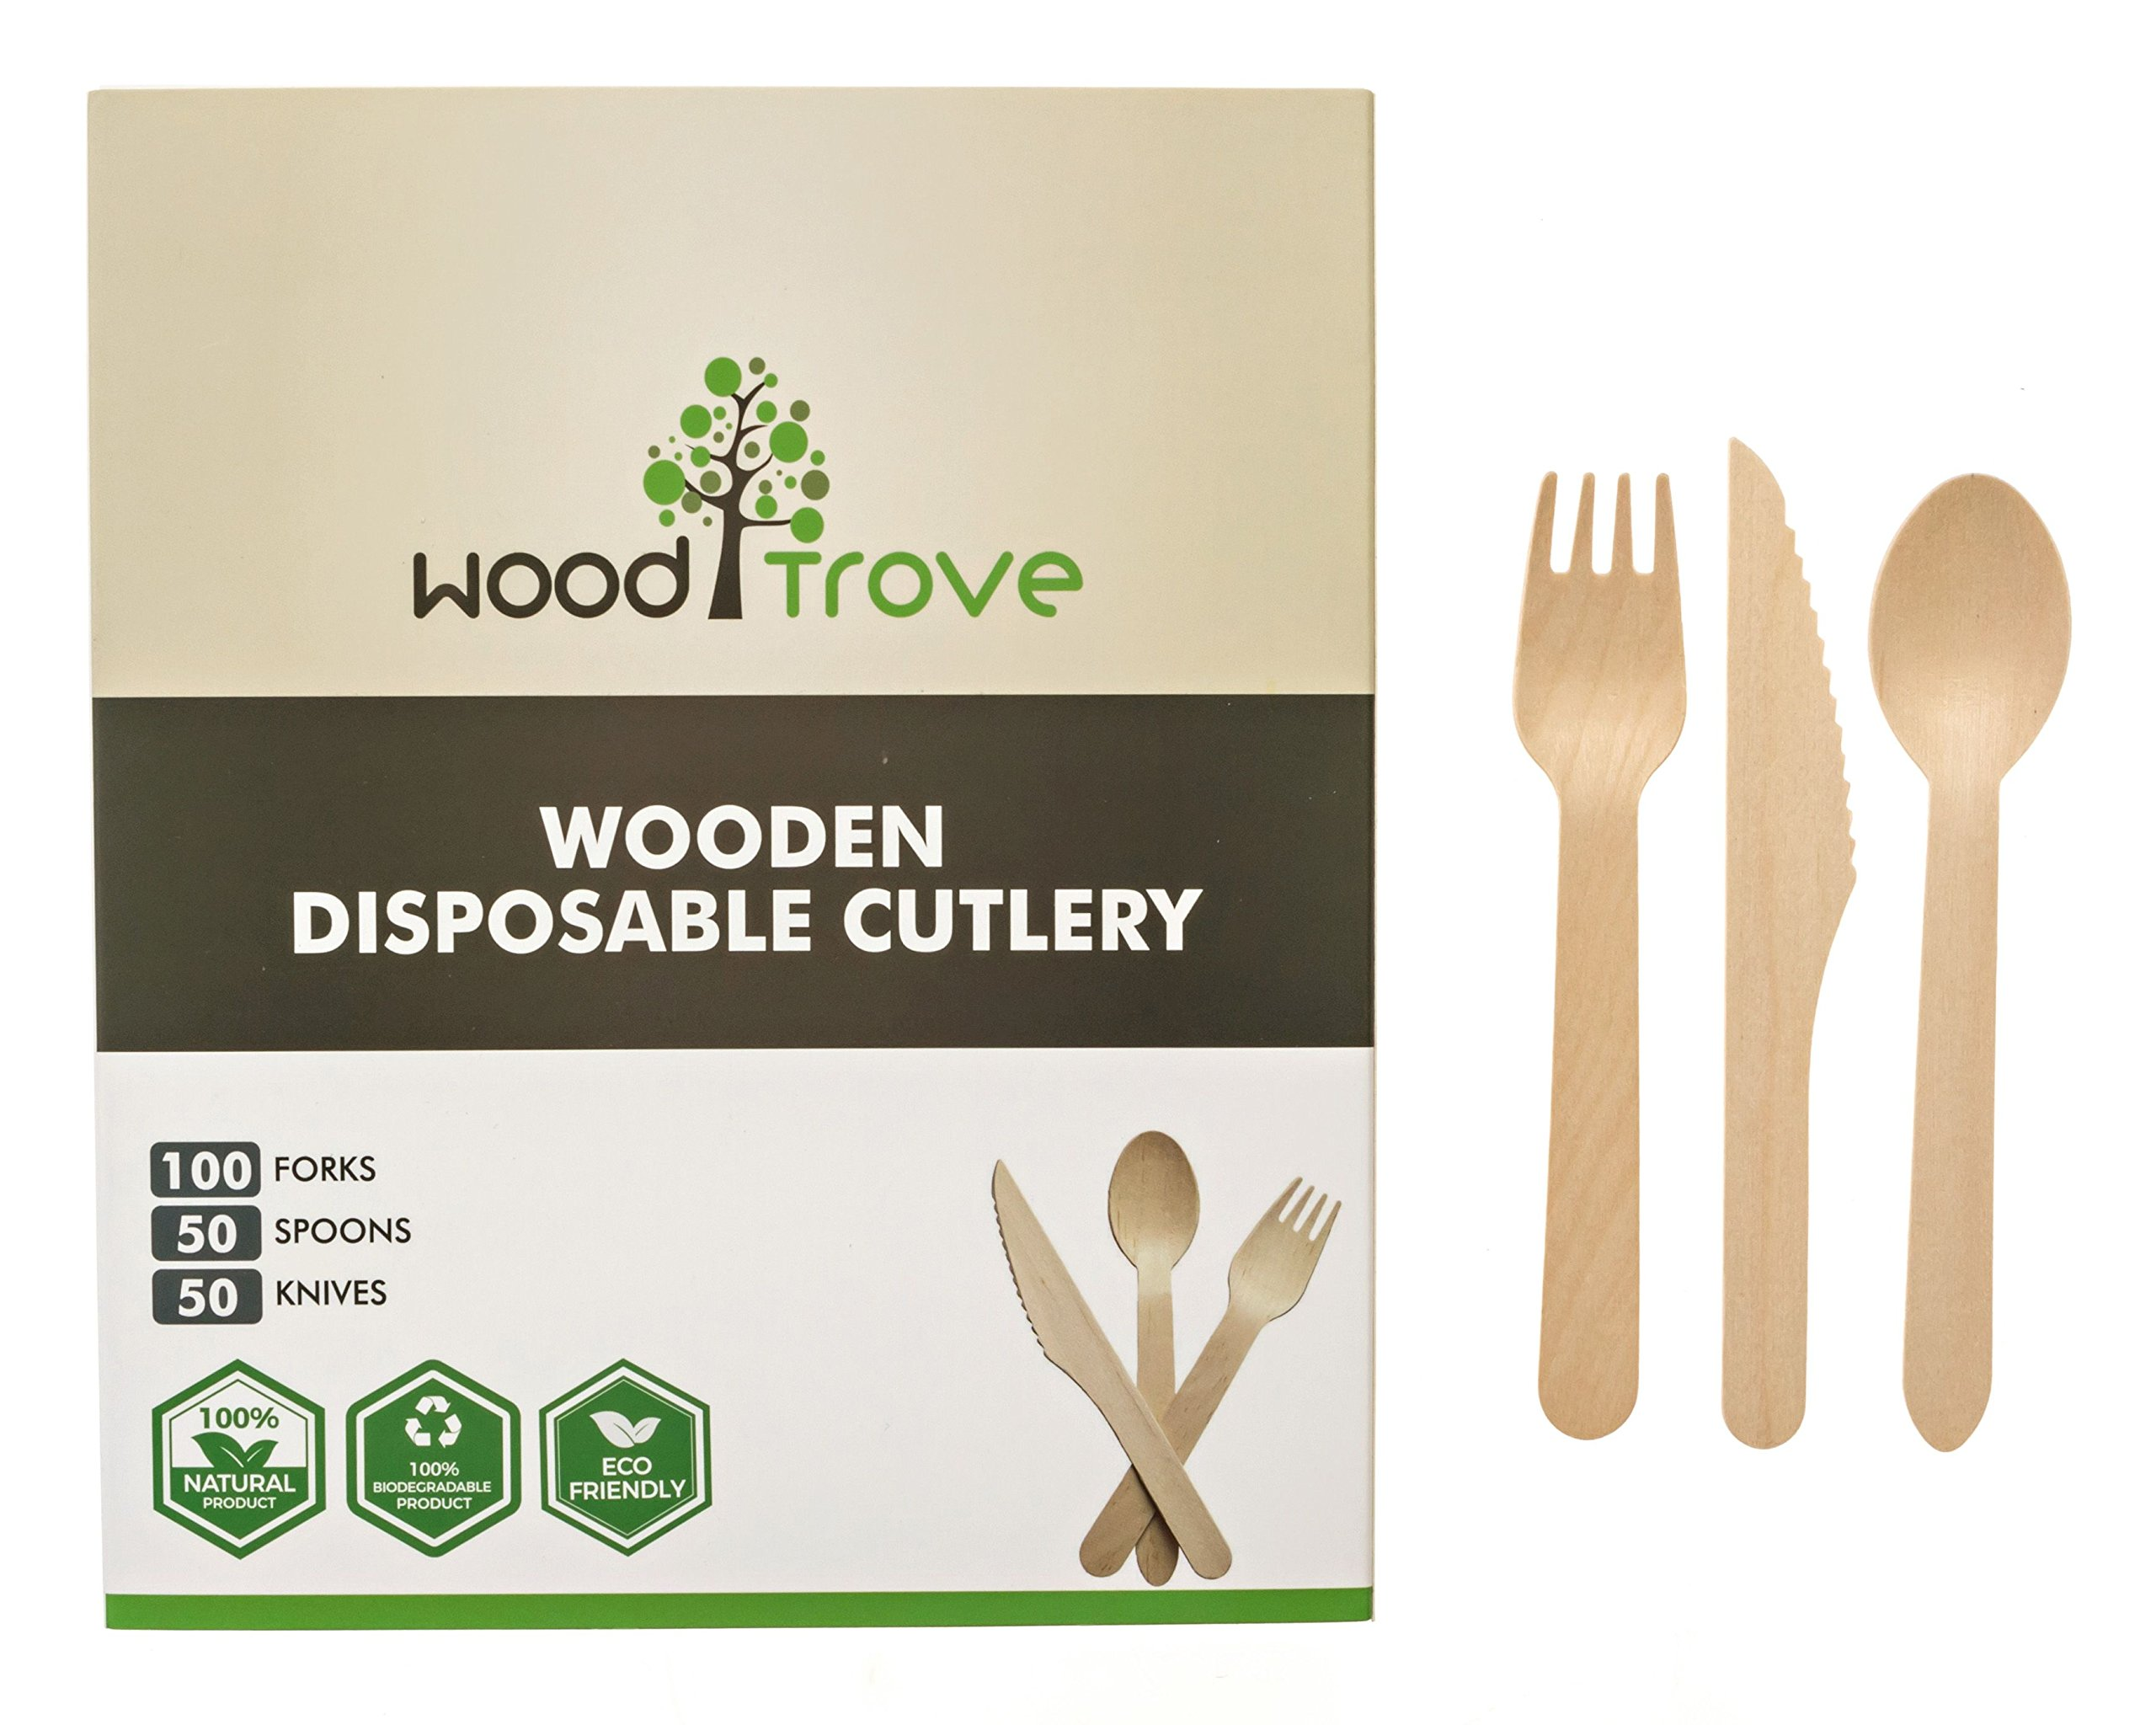 Wooden Disposable Utensils Set 100 Forks 50 Spoons 50 Knives Wood Cutlery Eco Friendly Compostable Biodegradable Silverware Party Flatware Kitchen Serving Eating Picnic Wedding Green Natural Utensil